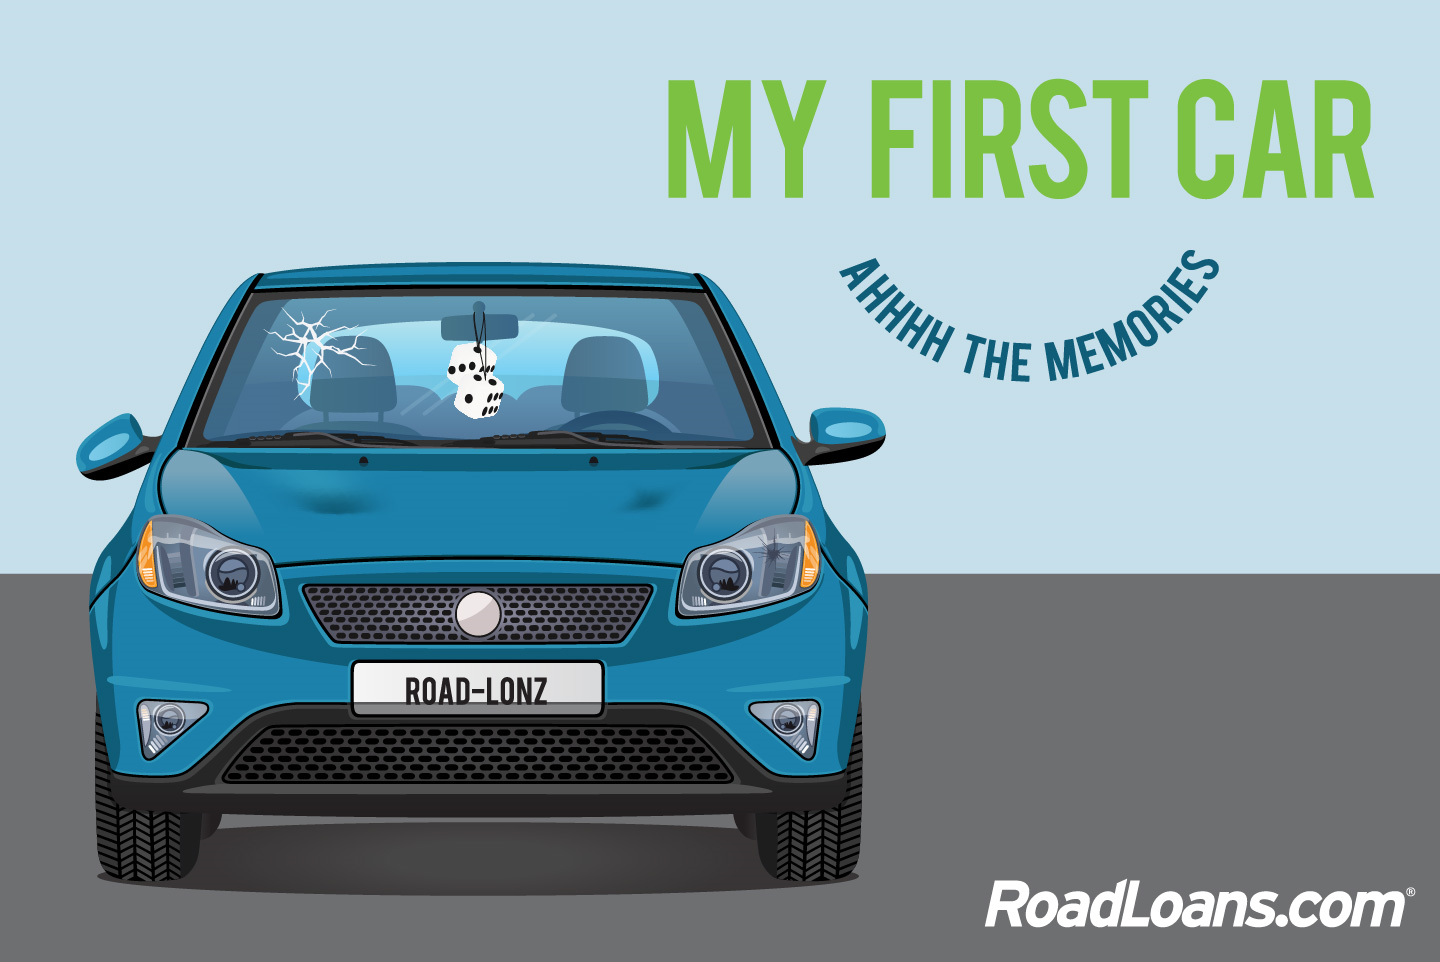 A collection of first-car experiences | RoadLoans